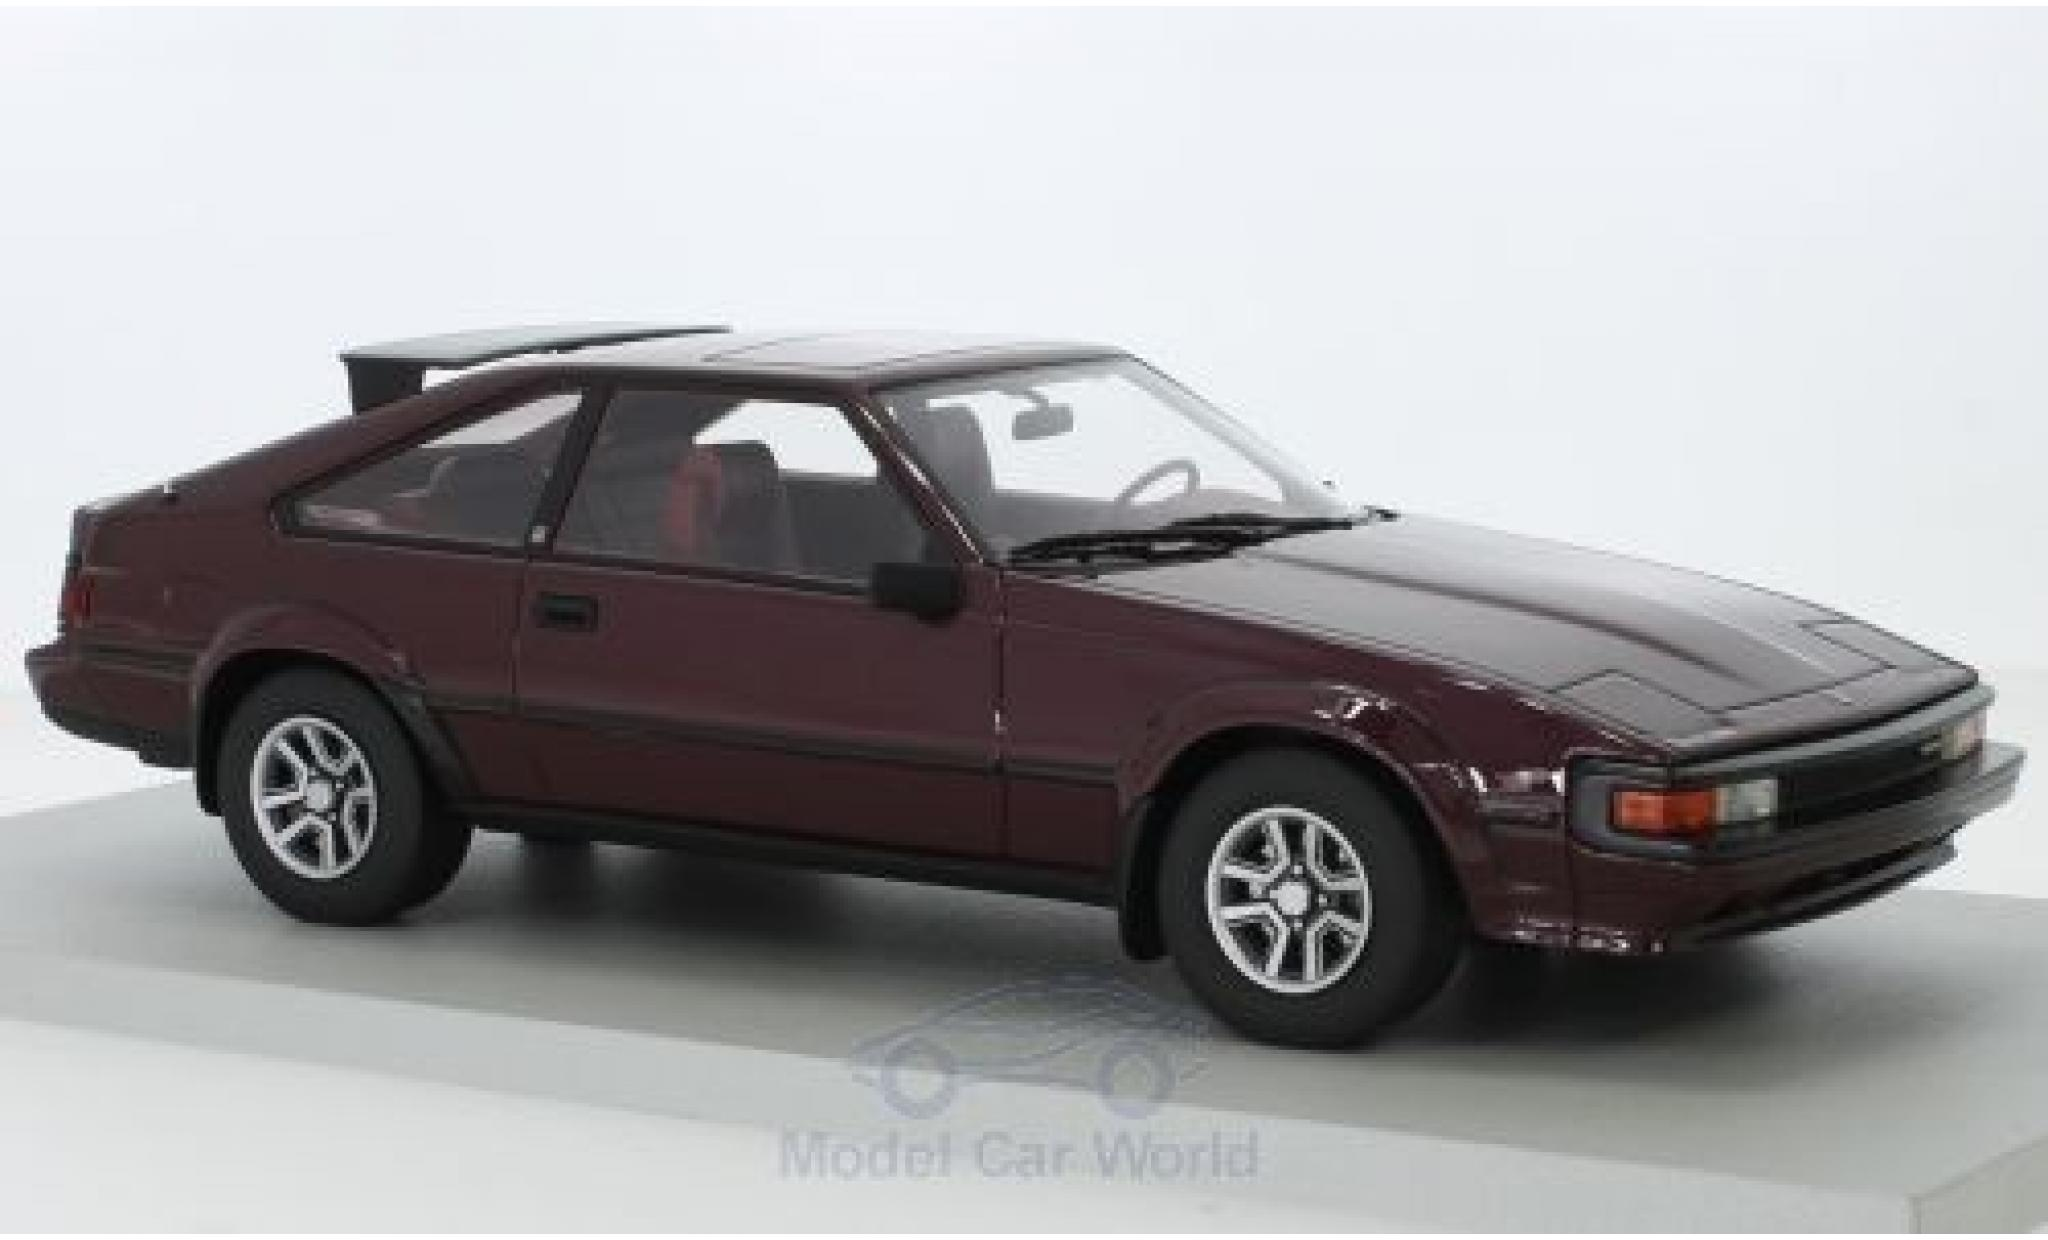 Toyota Celica 1/18 Lucky Step Models Supra MkII brown